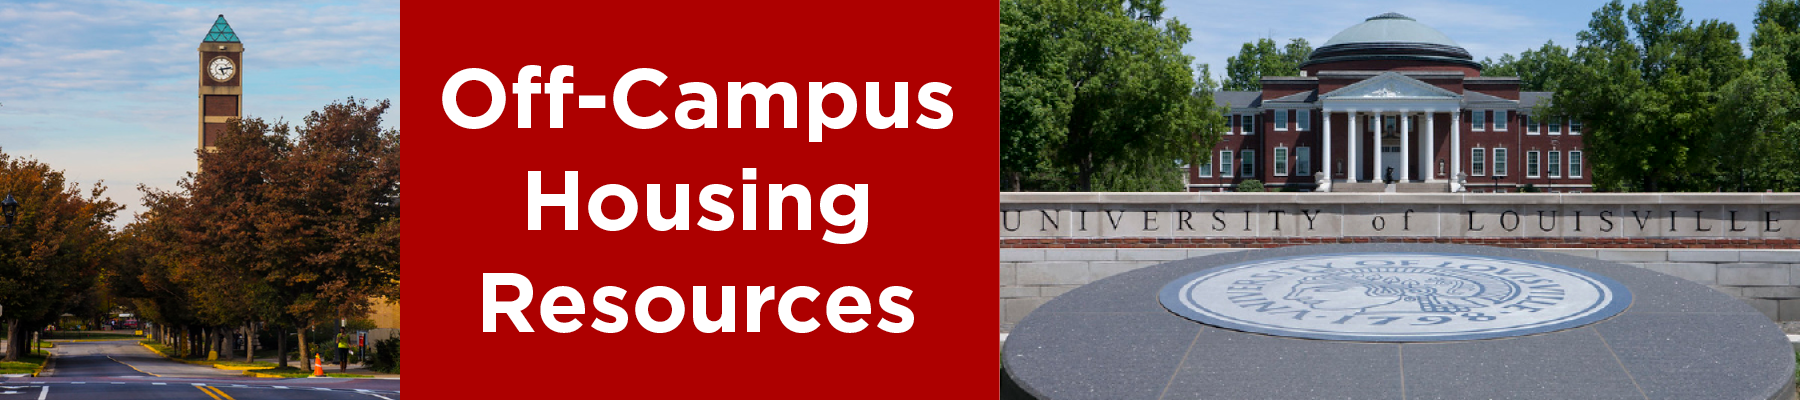 off-campus student services